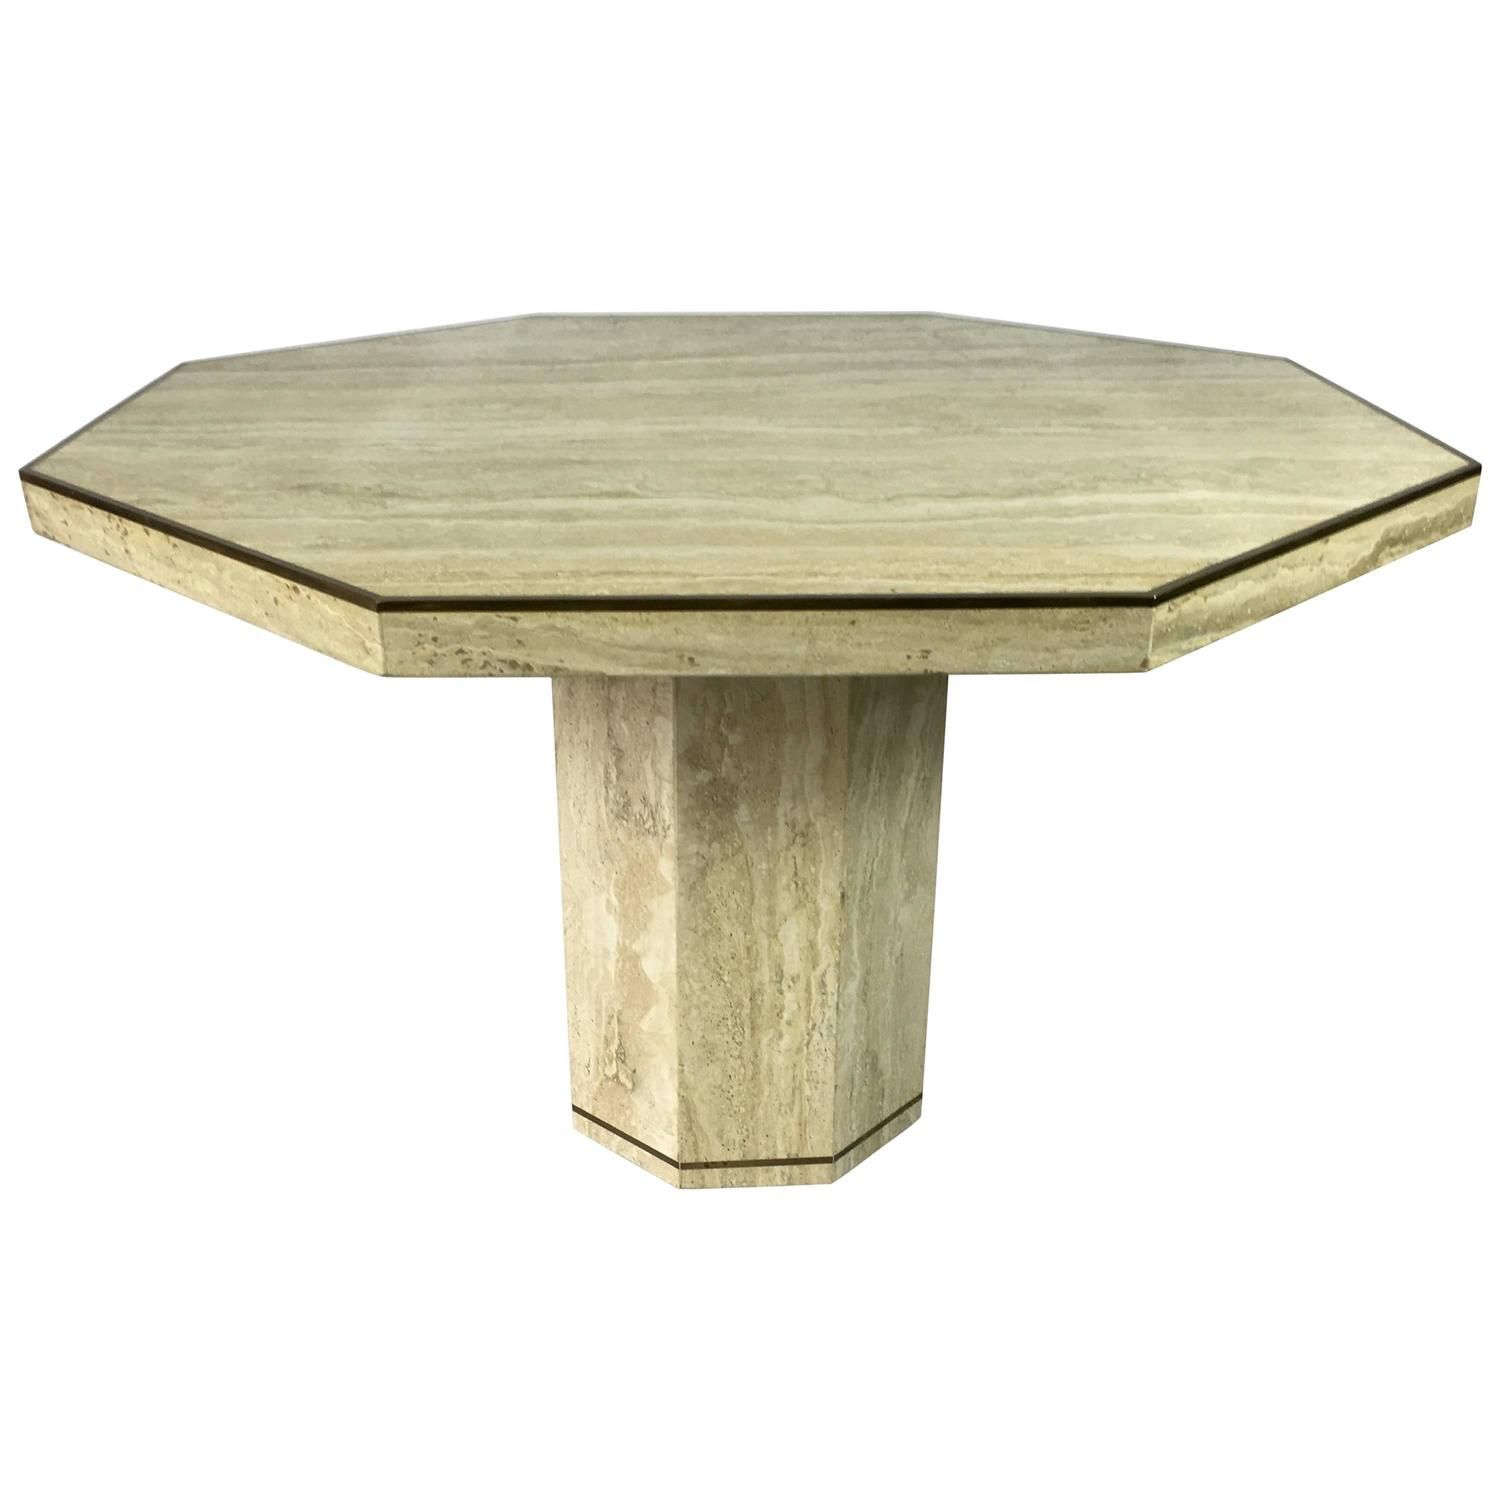 Travertine Marble Octagonal Center Or Dining Table With Brass